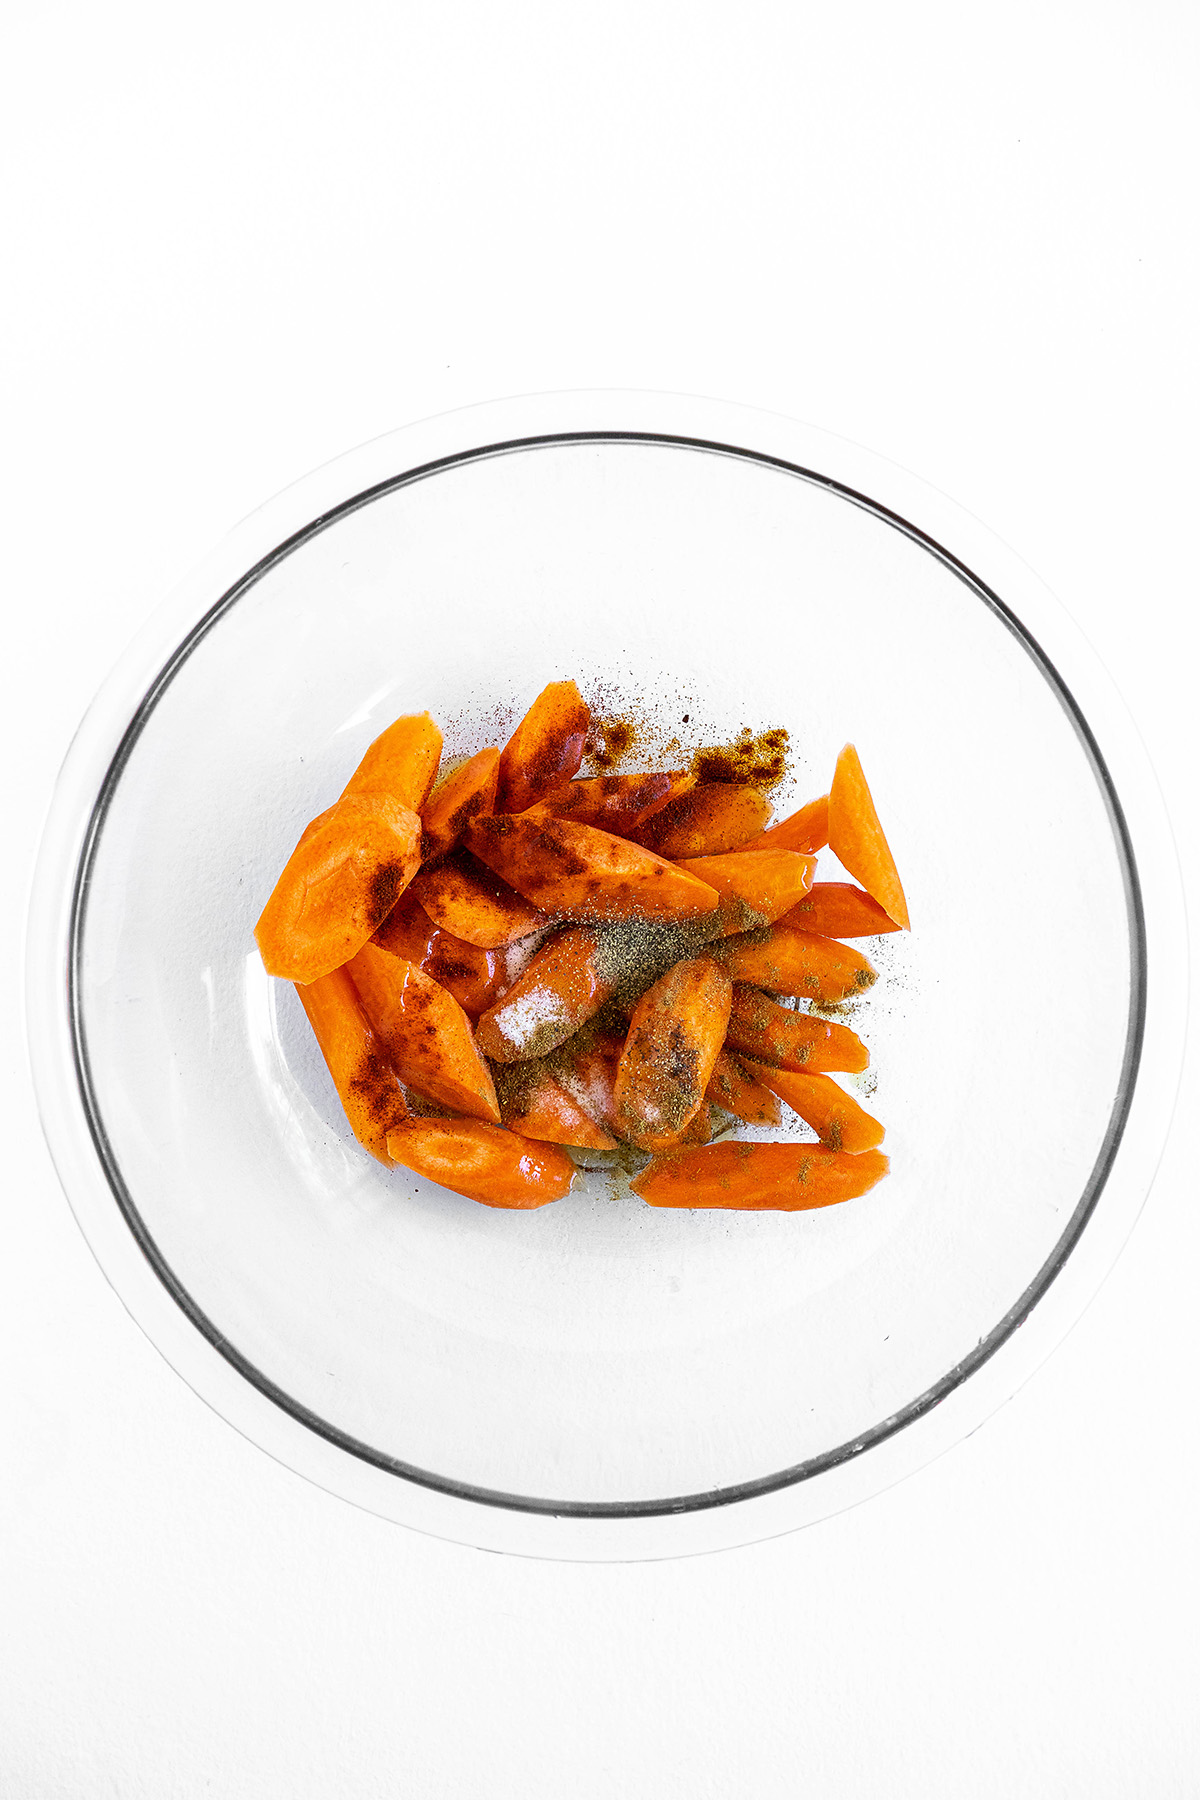 carrots mixed with seasoning in glass mixing  bowl.